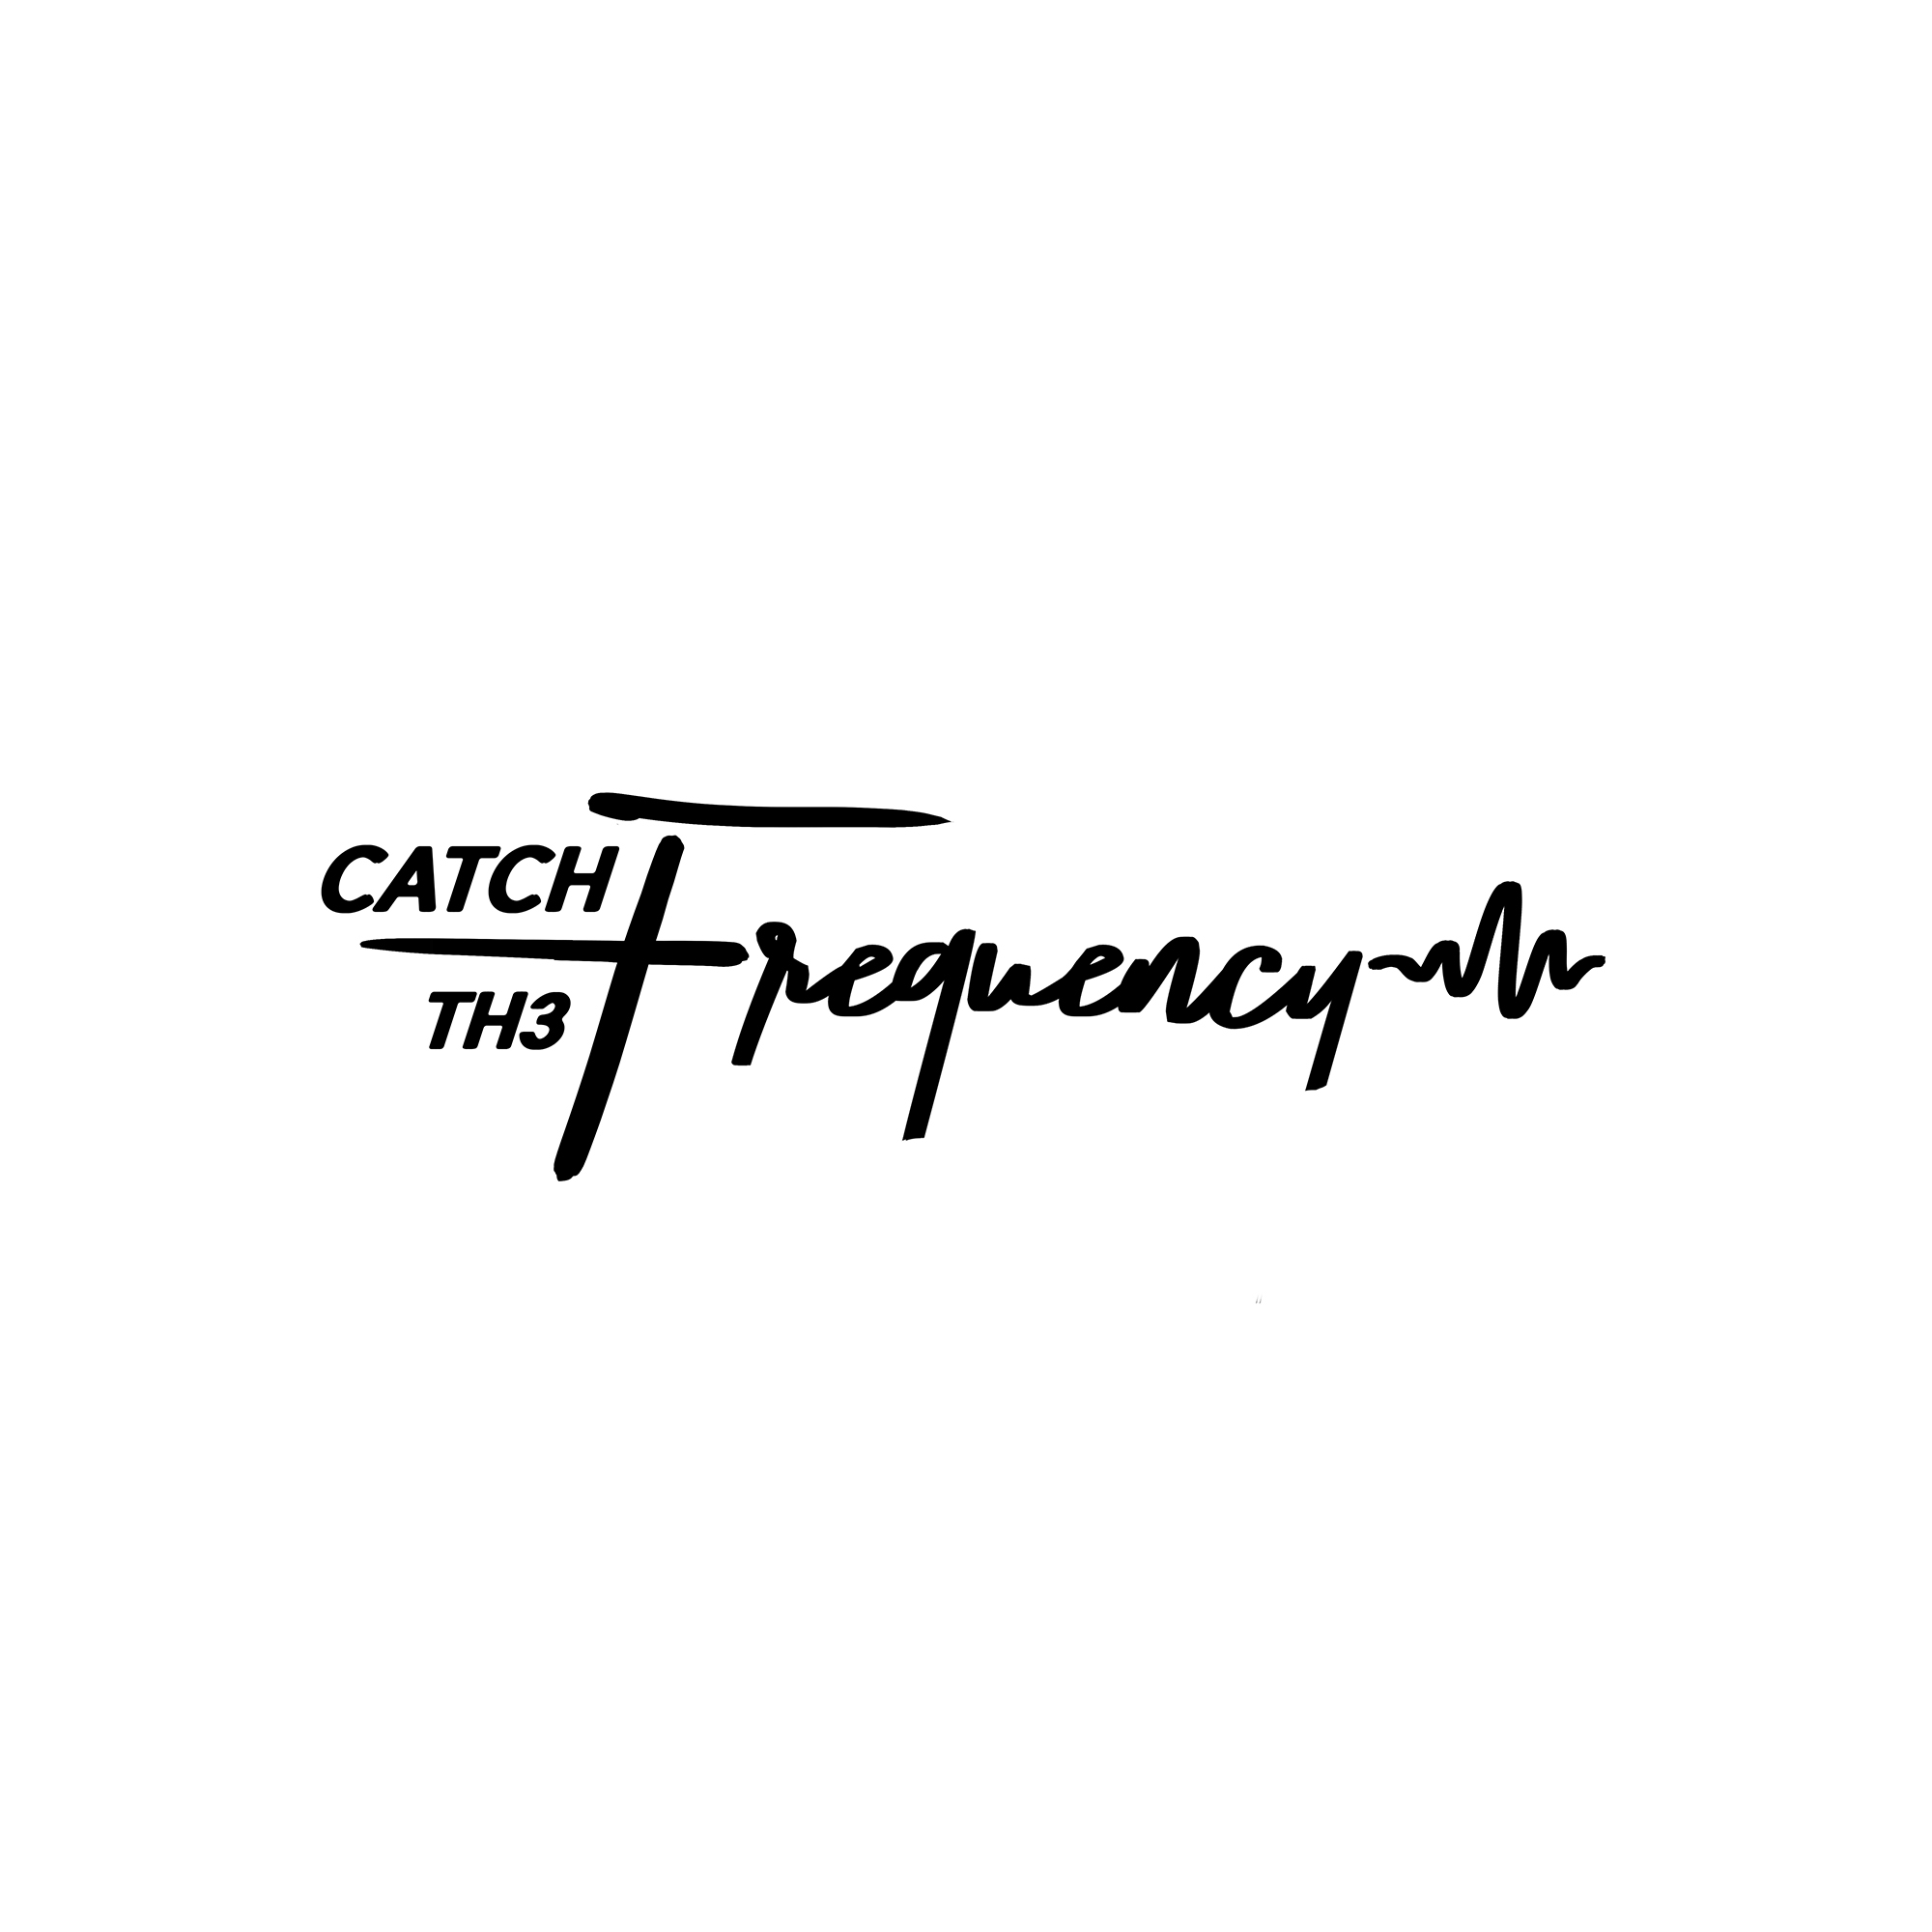 Catch Th3 Frequency